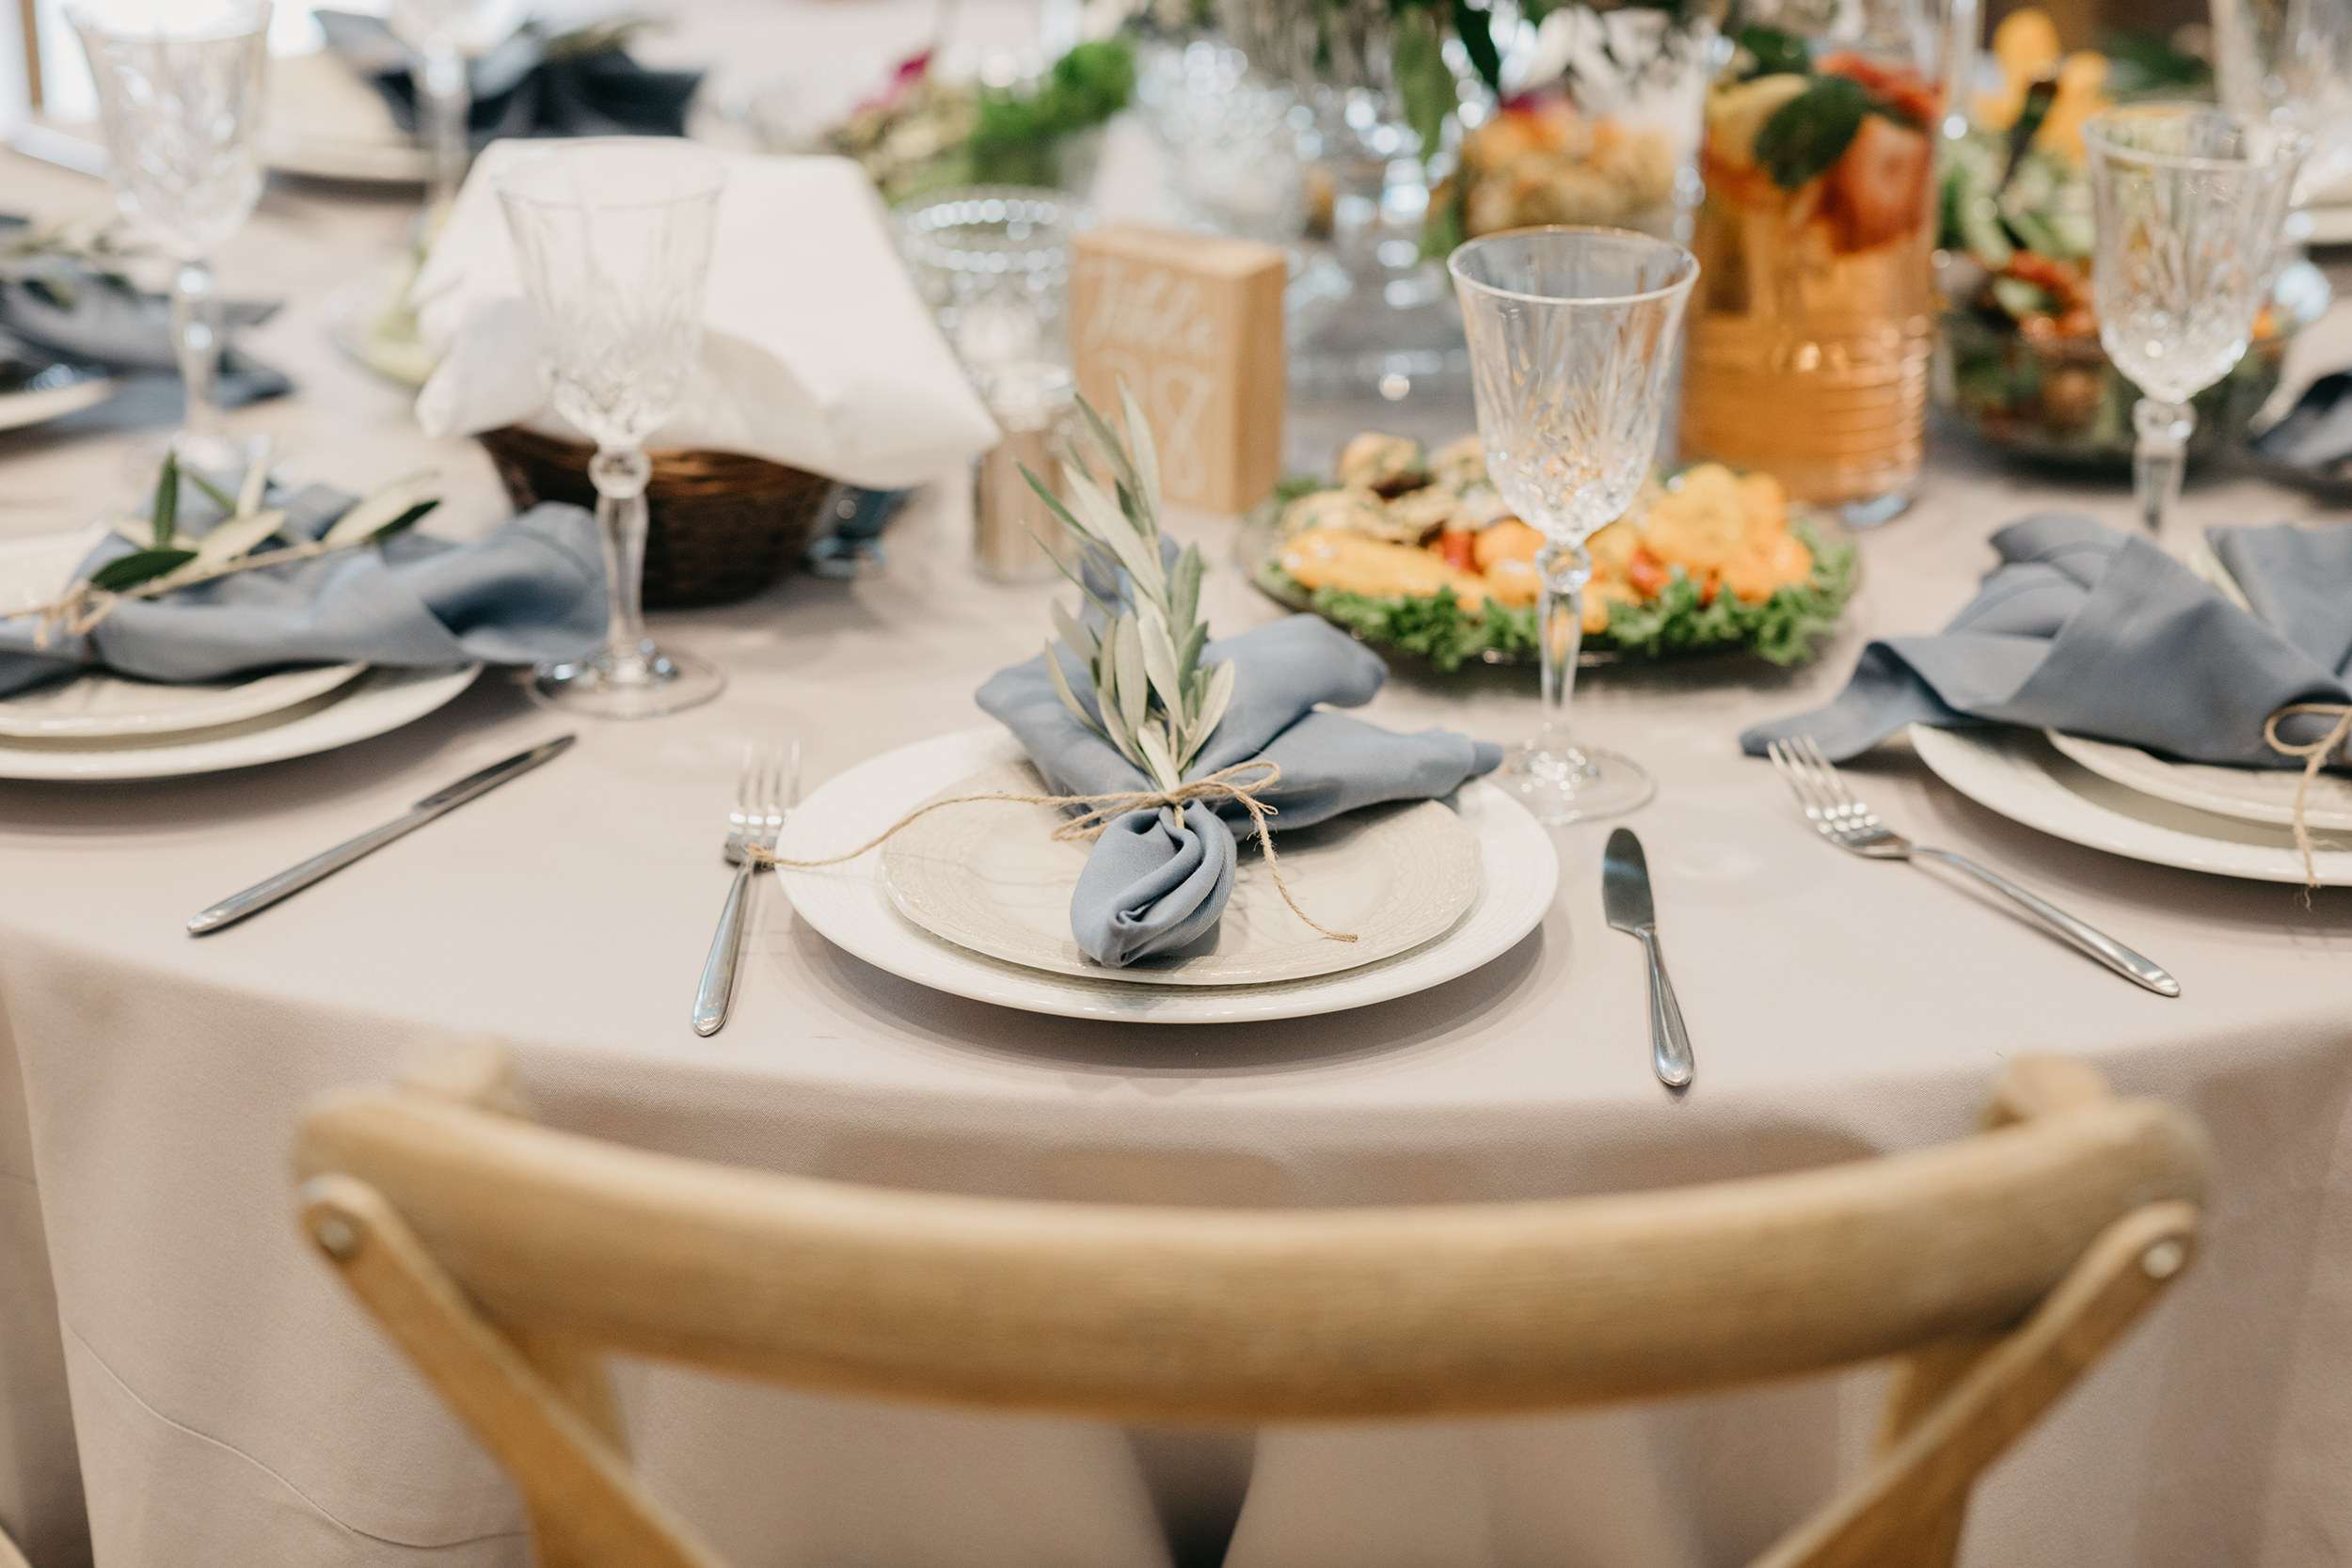 Violette-fleurs-event-design-roseville-Nelli-noel-photography-the-falls-event-center-Curated-Beautiful-Destination-Decor-place-settings.jpg